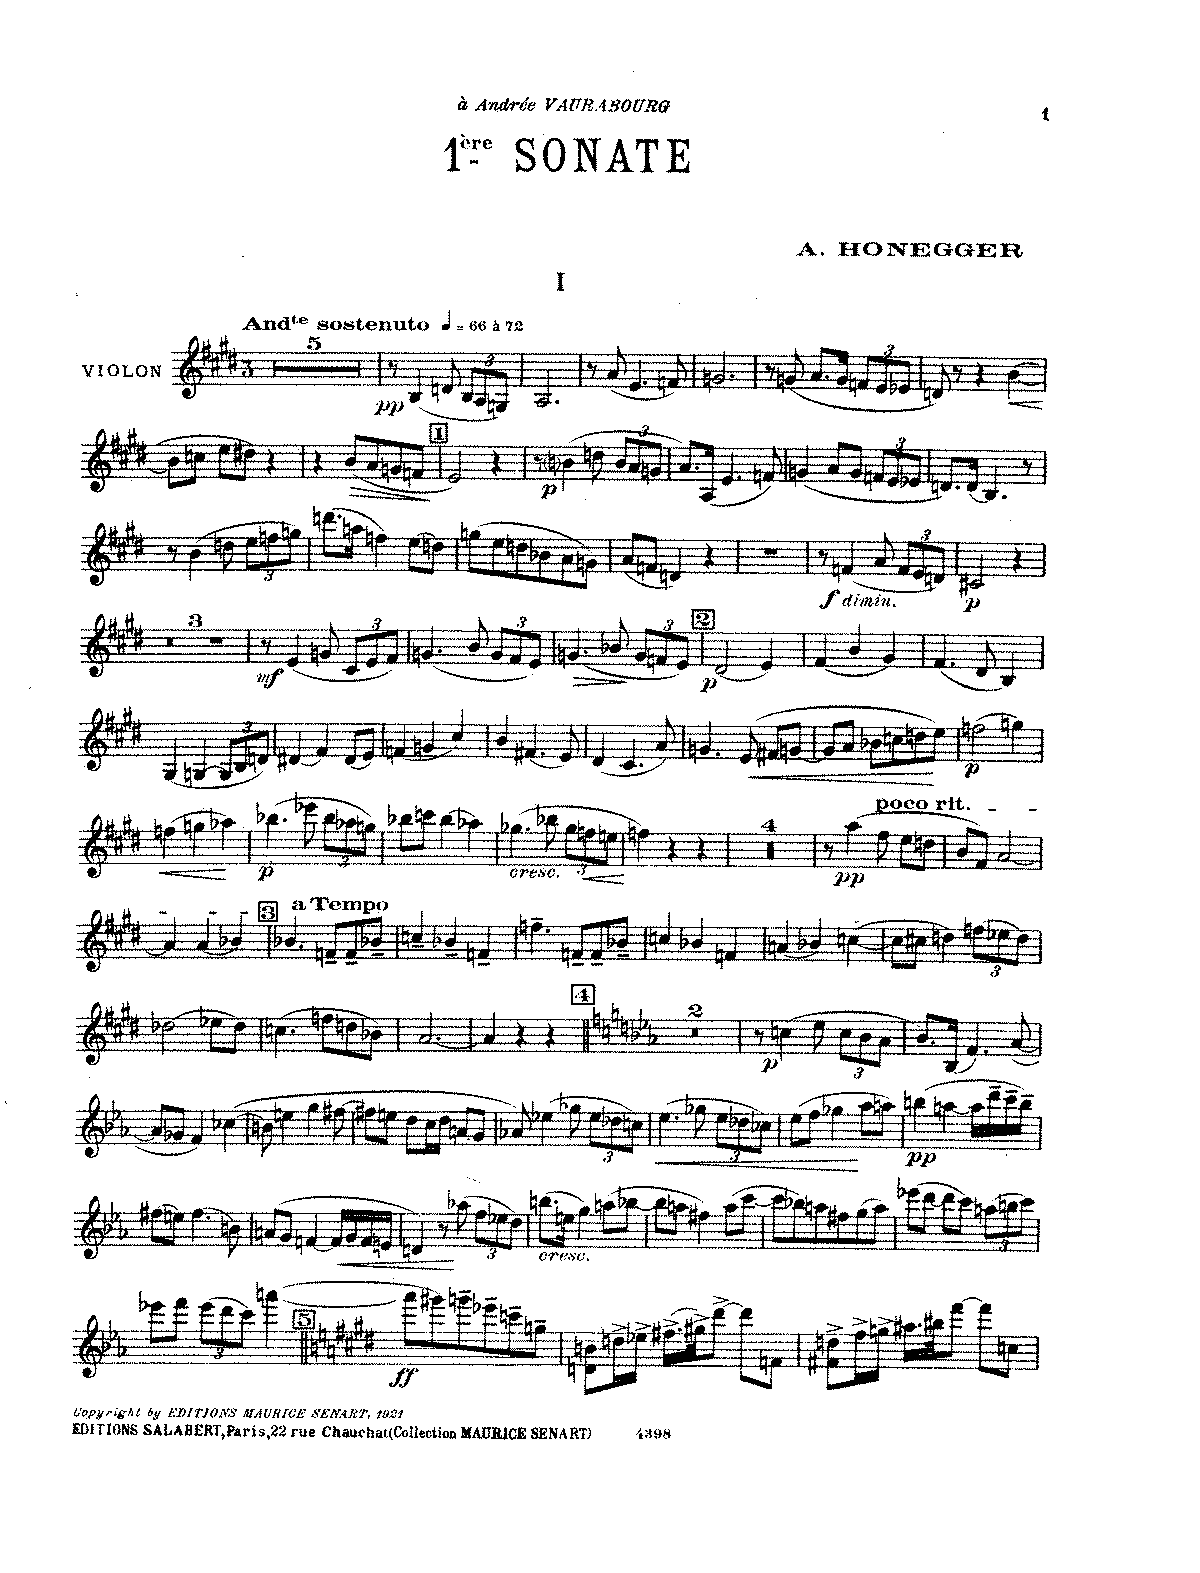 Honegger - Sonata No. 1 for Violin and Piano.pdf